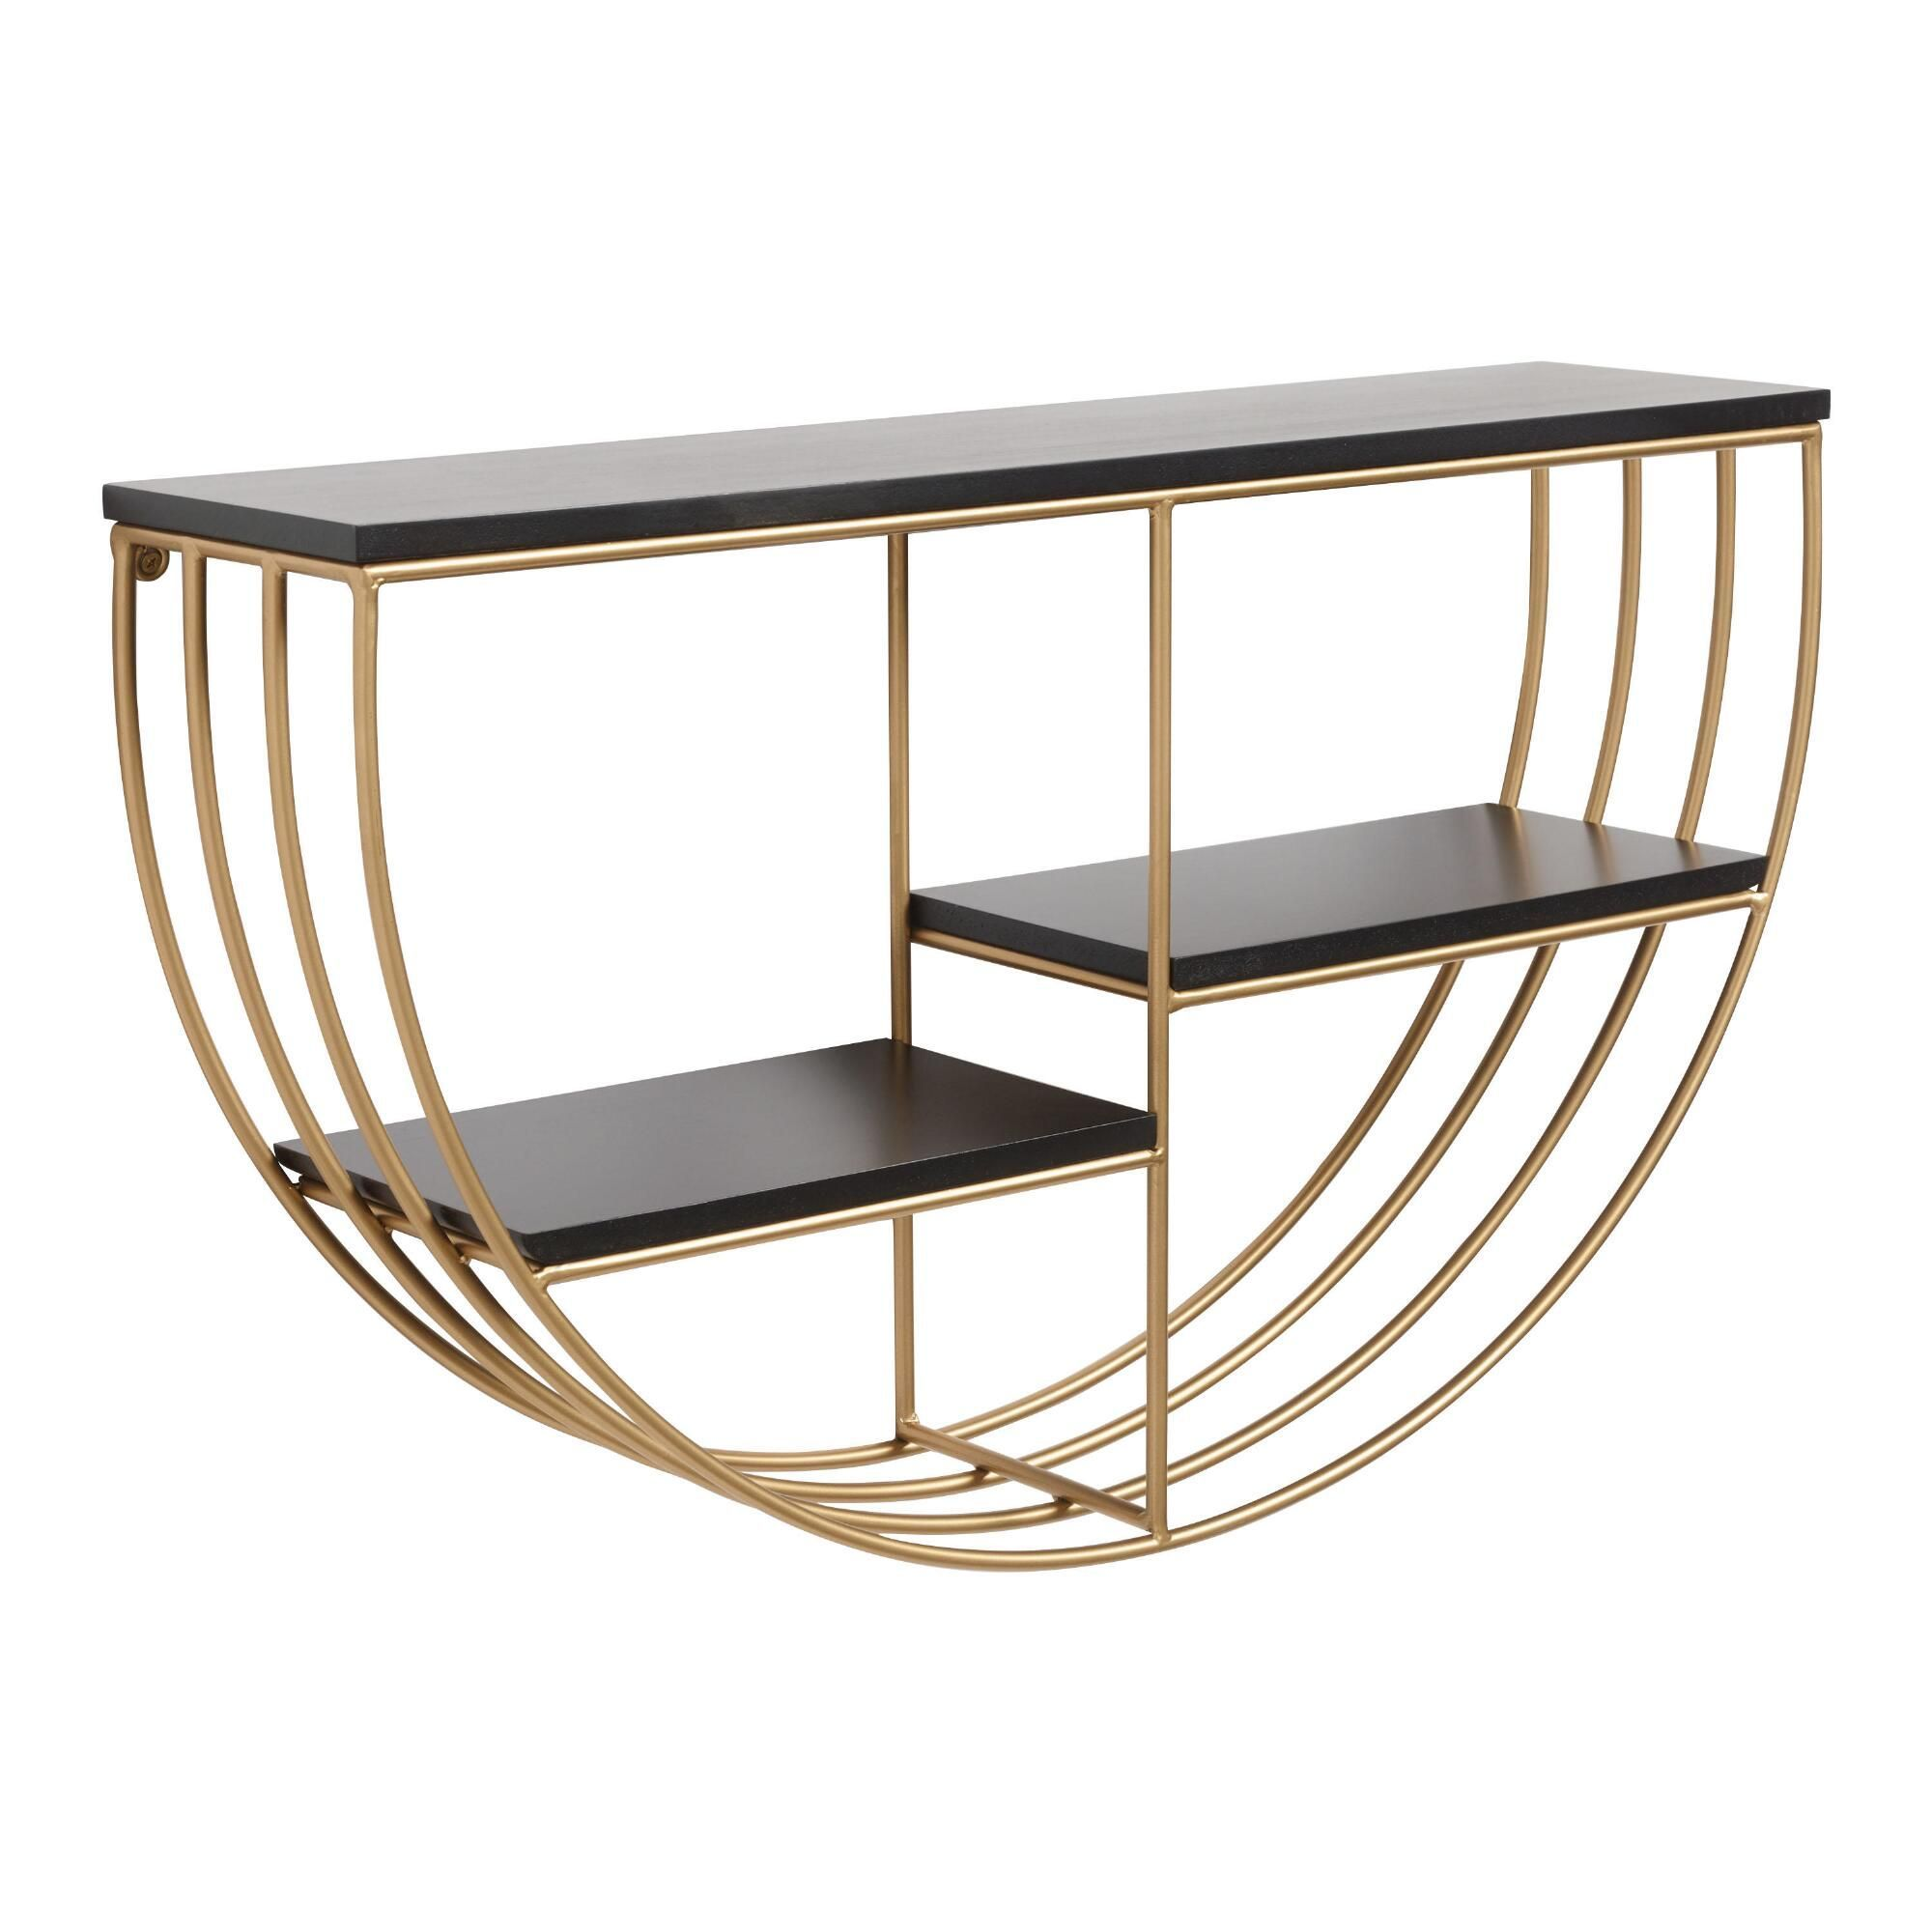 Half Round Gold And Black Wall Shelf By World Market It Is Possible To Make Small Room Designs That Are Seen As In 2020 Black Wall Shelves Wall Shelves Black Walls